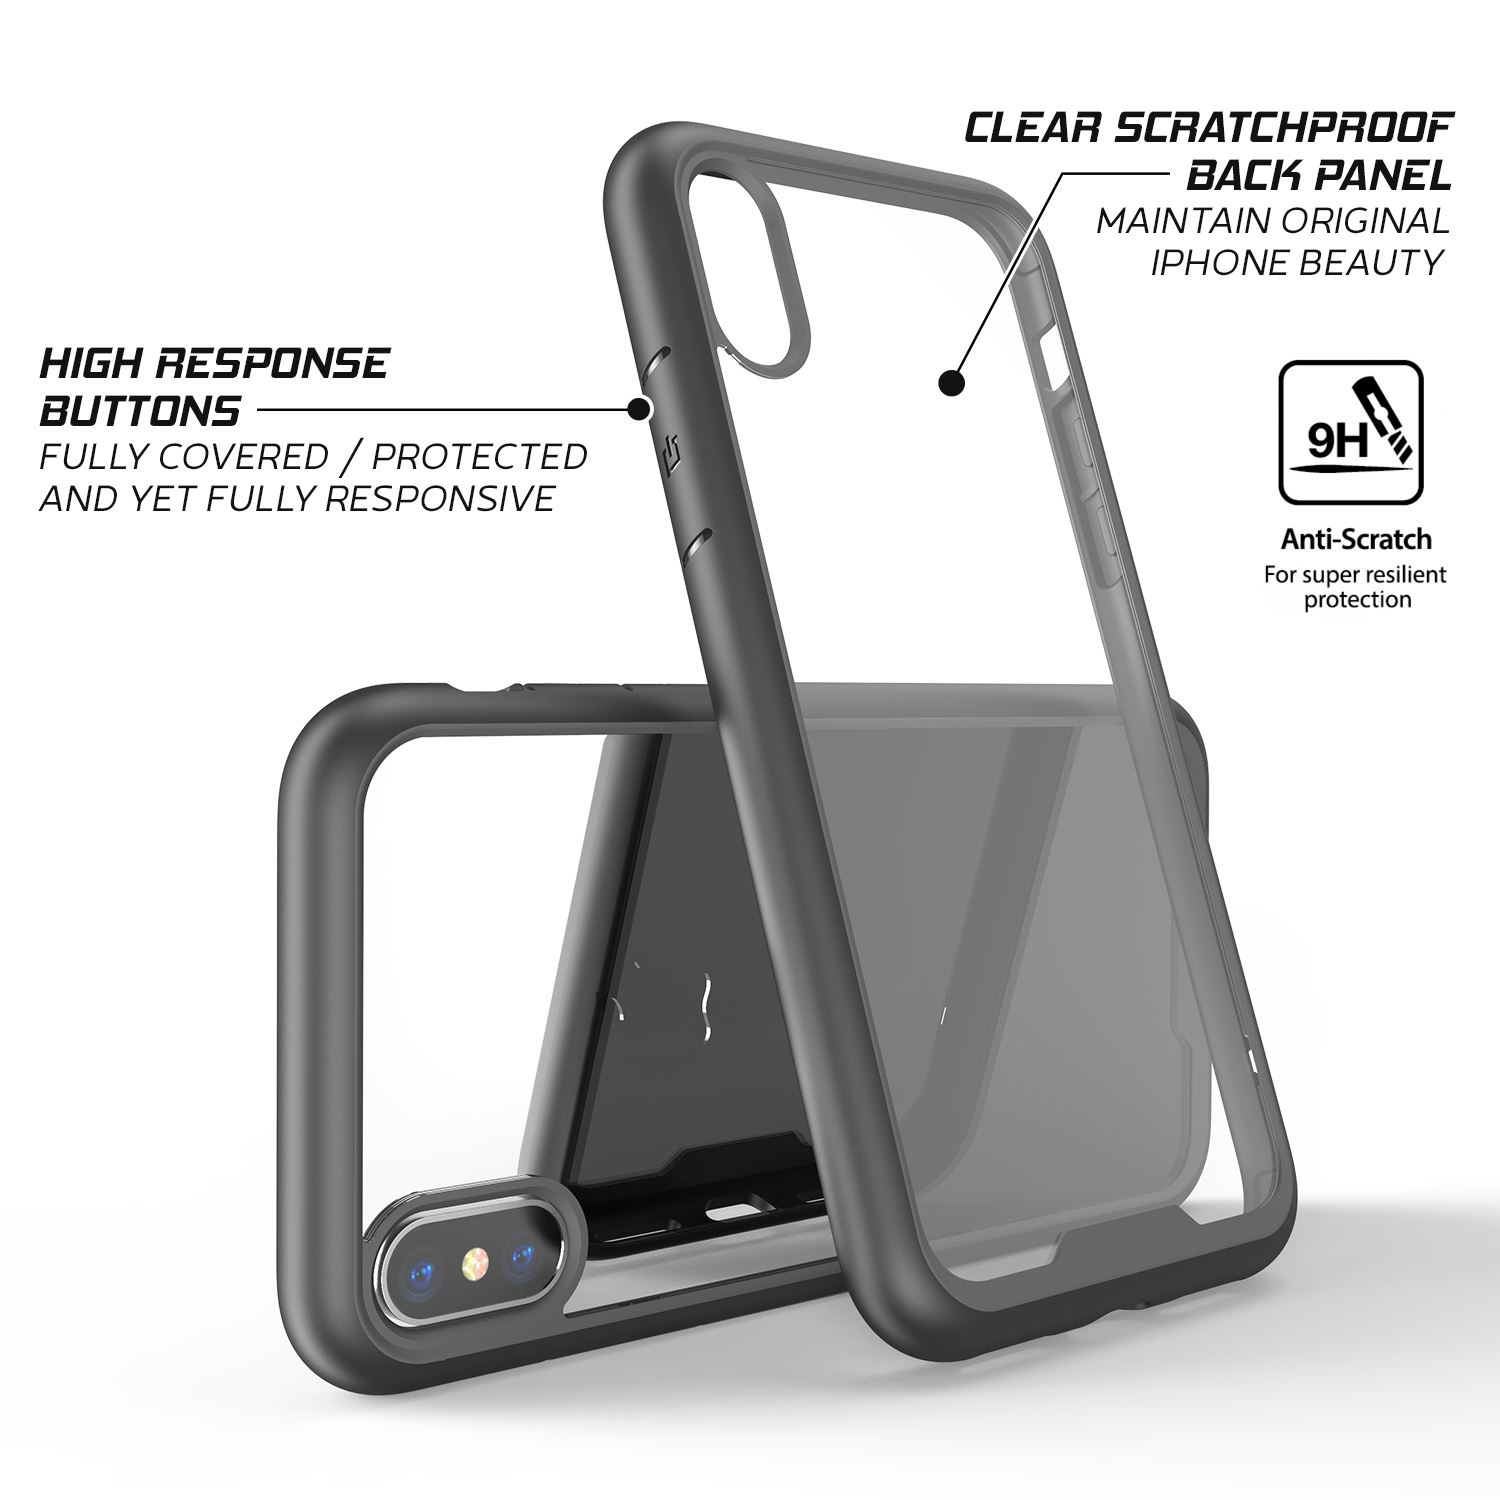 thumbnail 10 - For Apple iPhone XR Xs Max X 8 7 Plus 6 Se 2020 Case Cover Clear Shockproof Thin